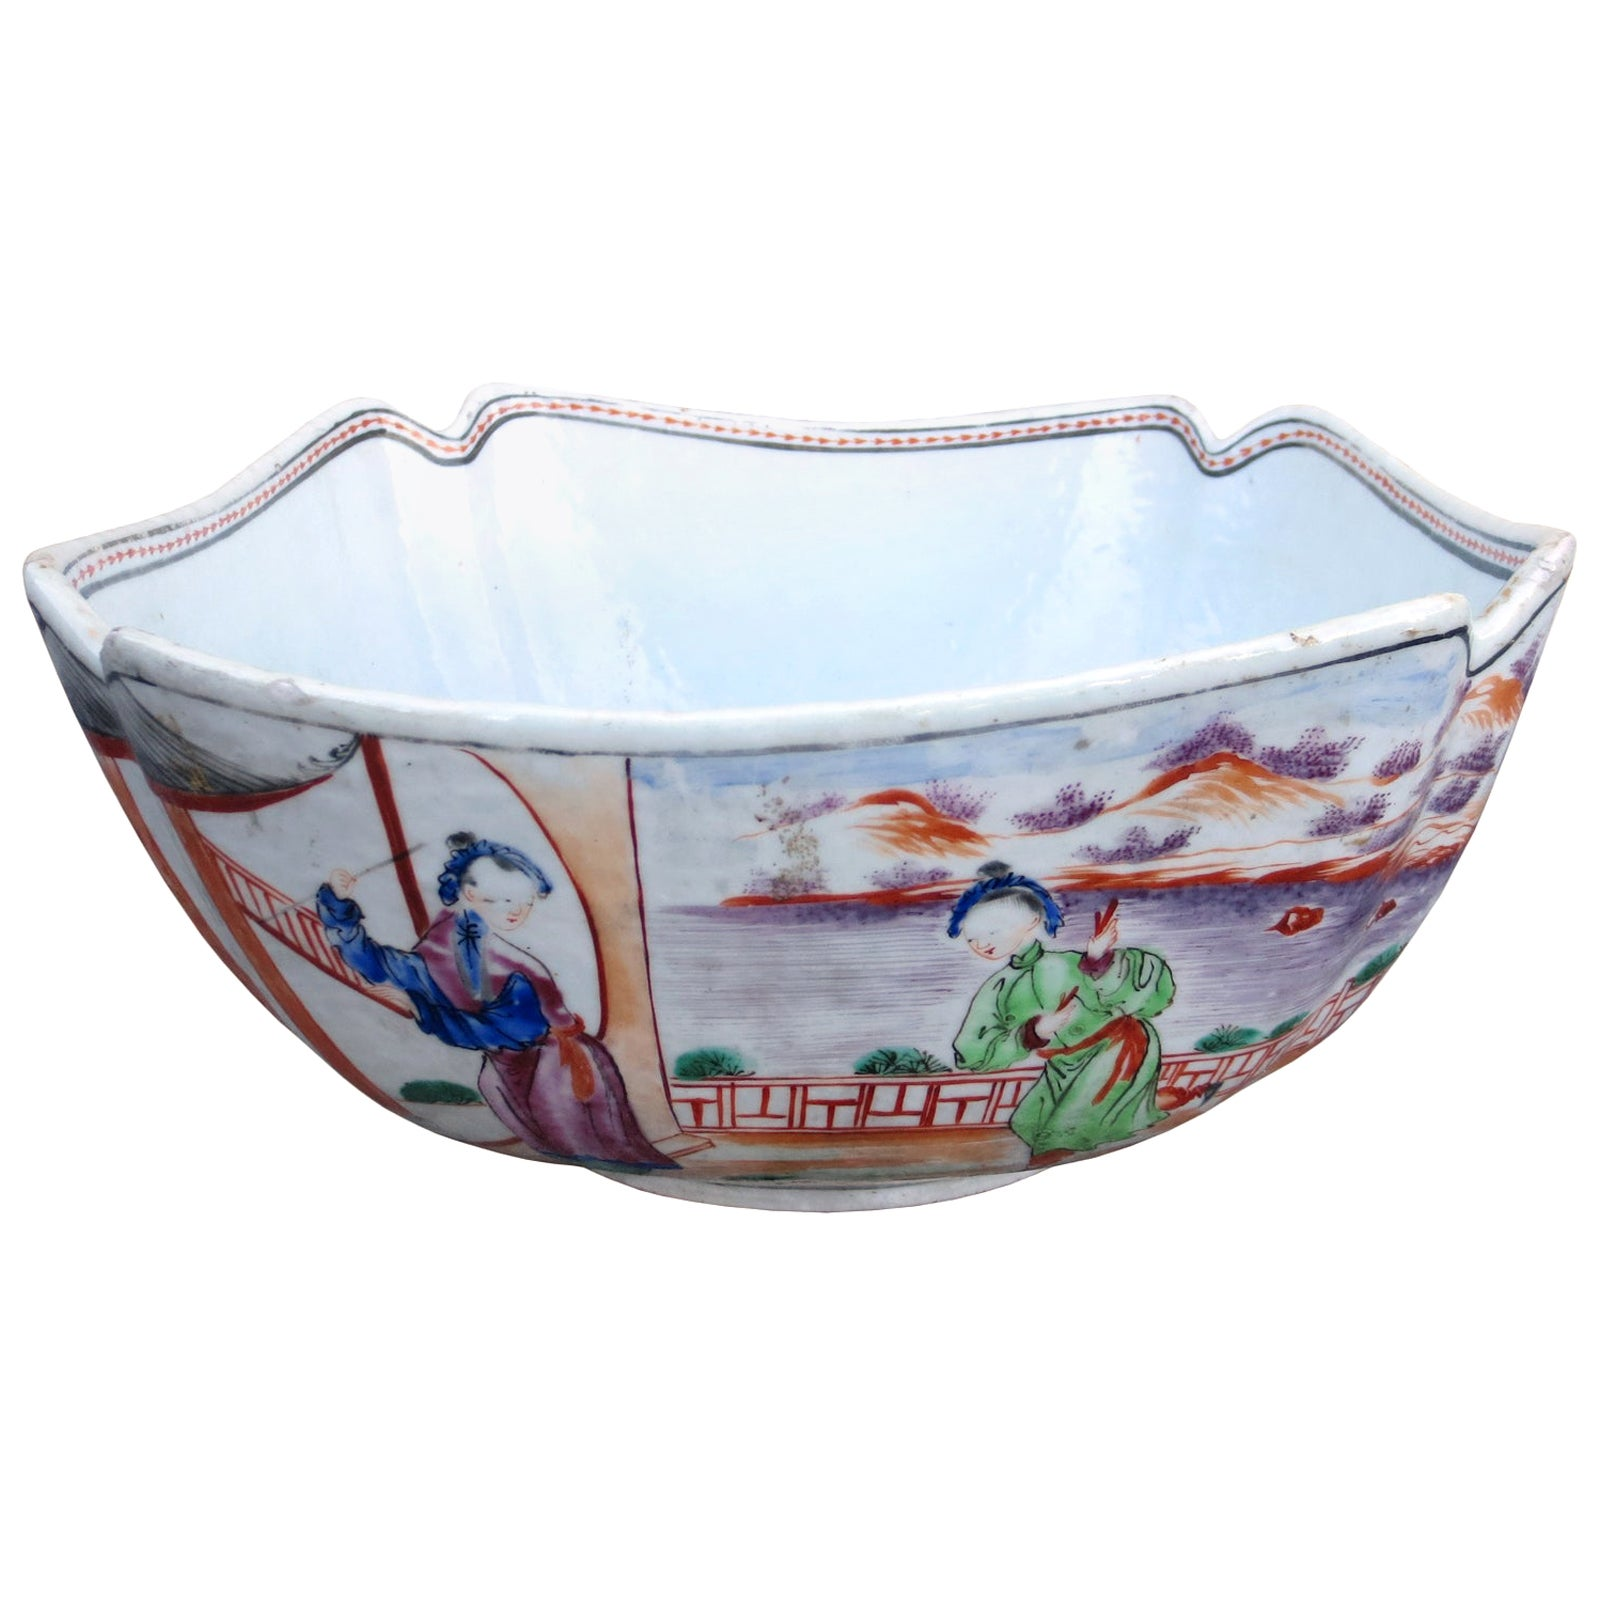 18th Century Chinese Porcelain Square Bowl